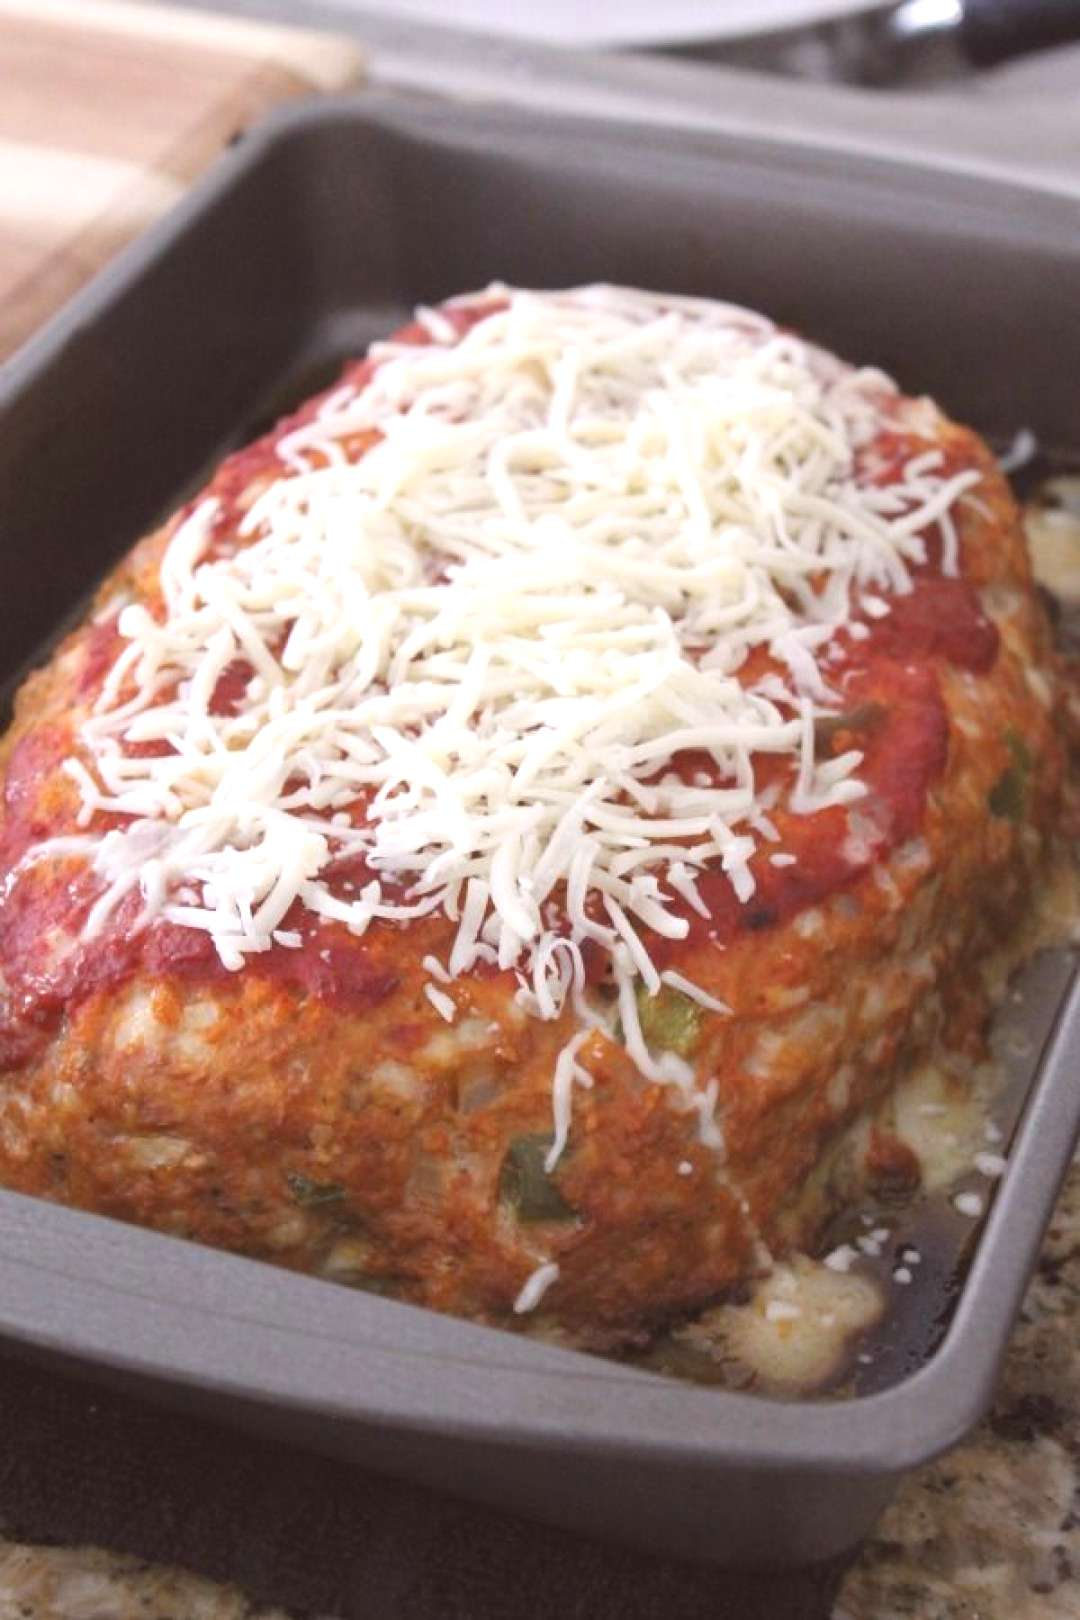 Turkey Meatloaf Recipe with Sausage, Peppers, and Onions - Italian Sausage Peppers Meatloaf. Lean